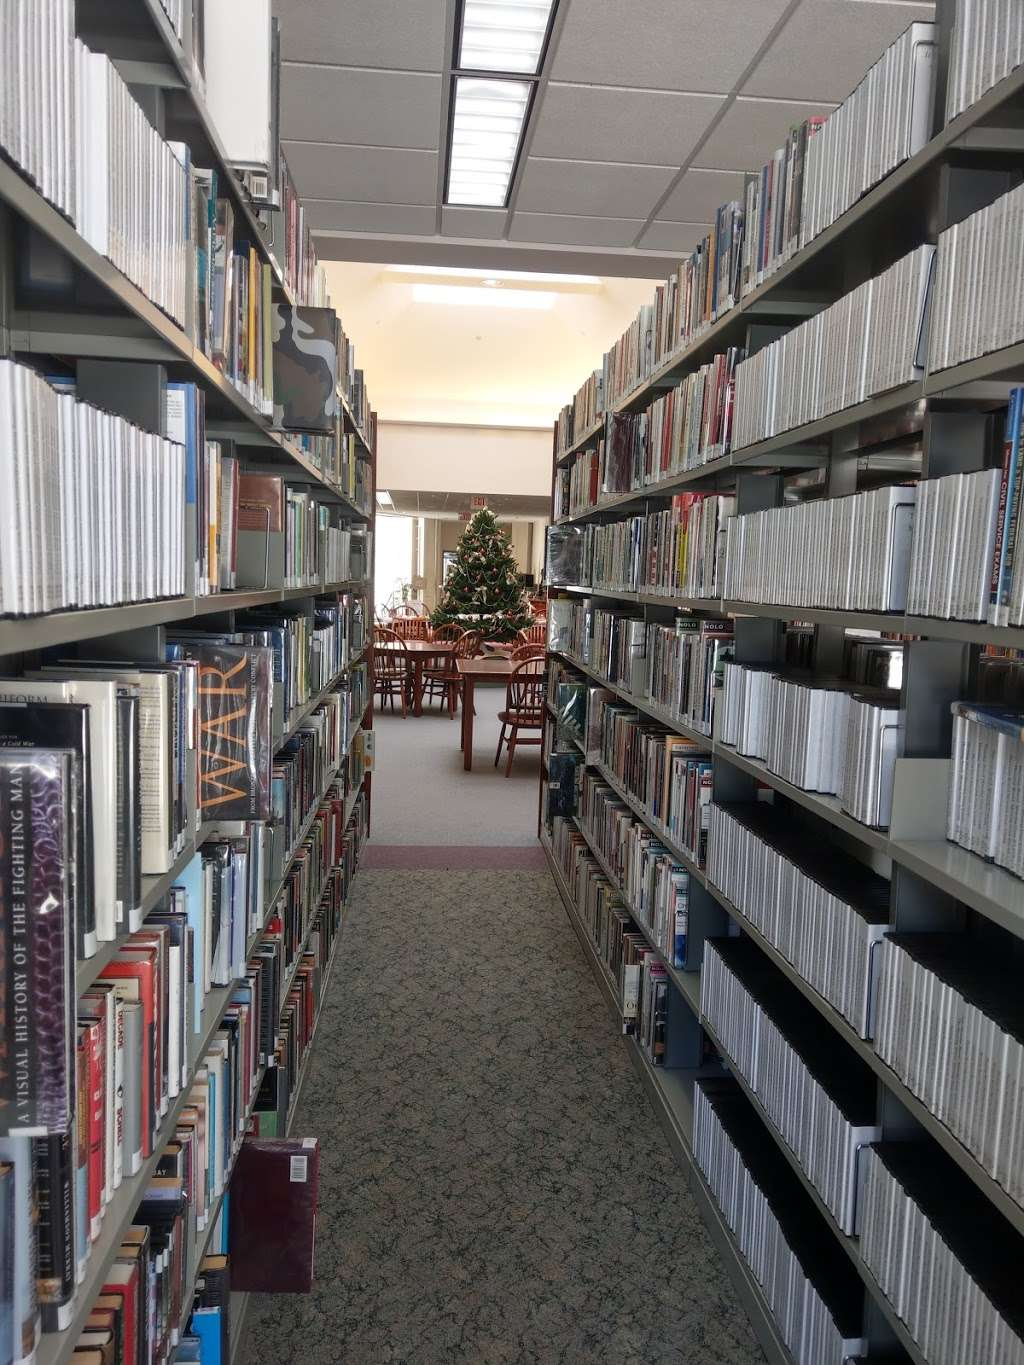 Leach Public Library - library  | Photo 1 of 10 | Address: 276 Mammoth Rd, Londonderry, NH 03053, USA | Phone: (603) 432-1132